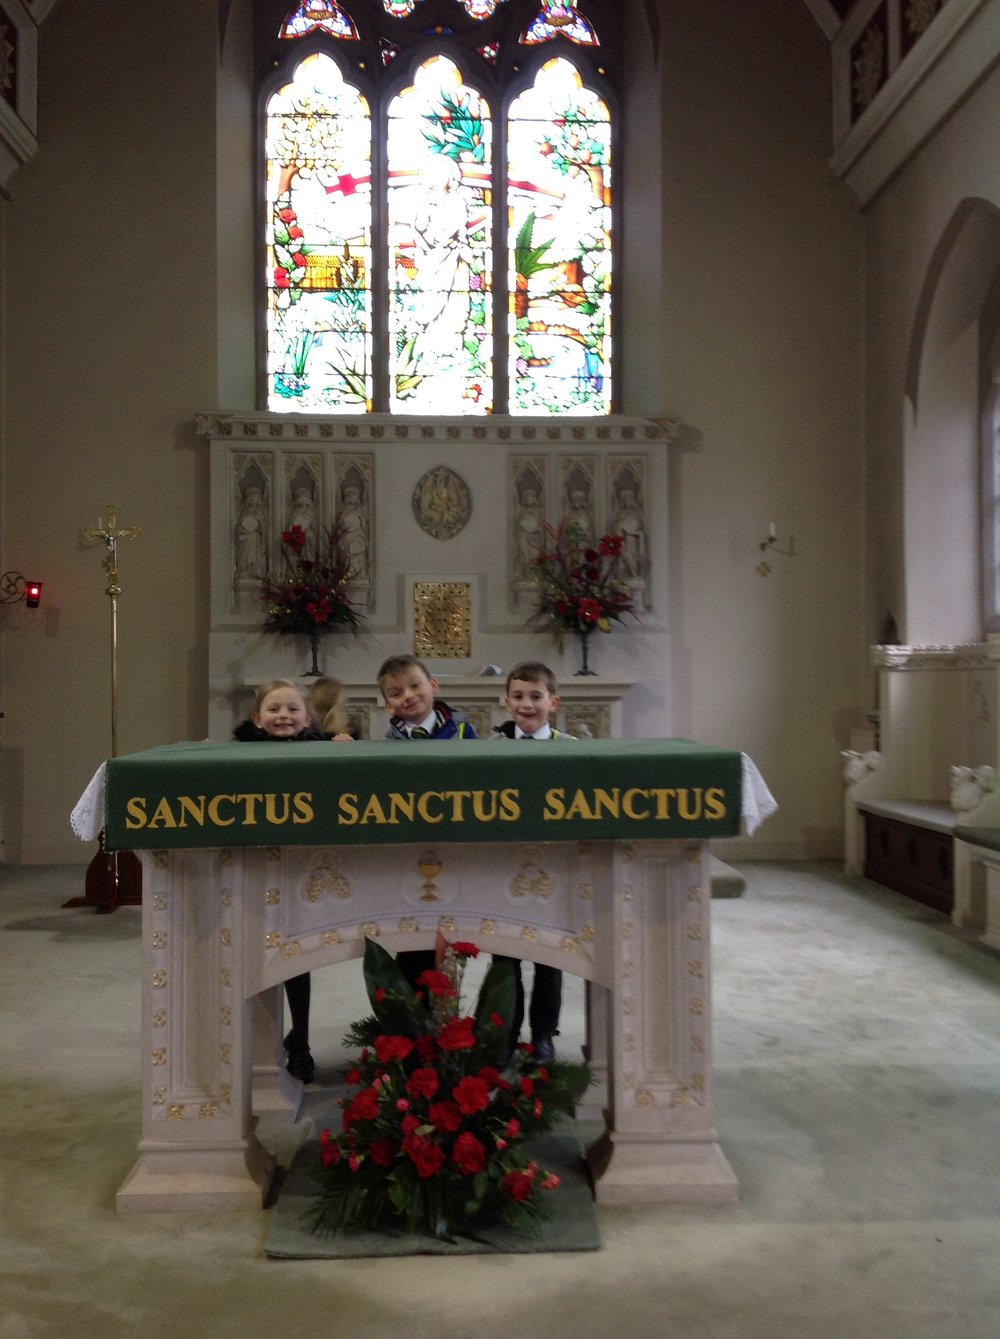 We really enjoyed exploring our Catholic Church. Thank you Father Lawrie.